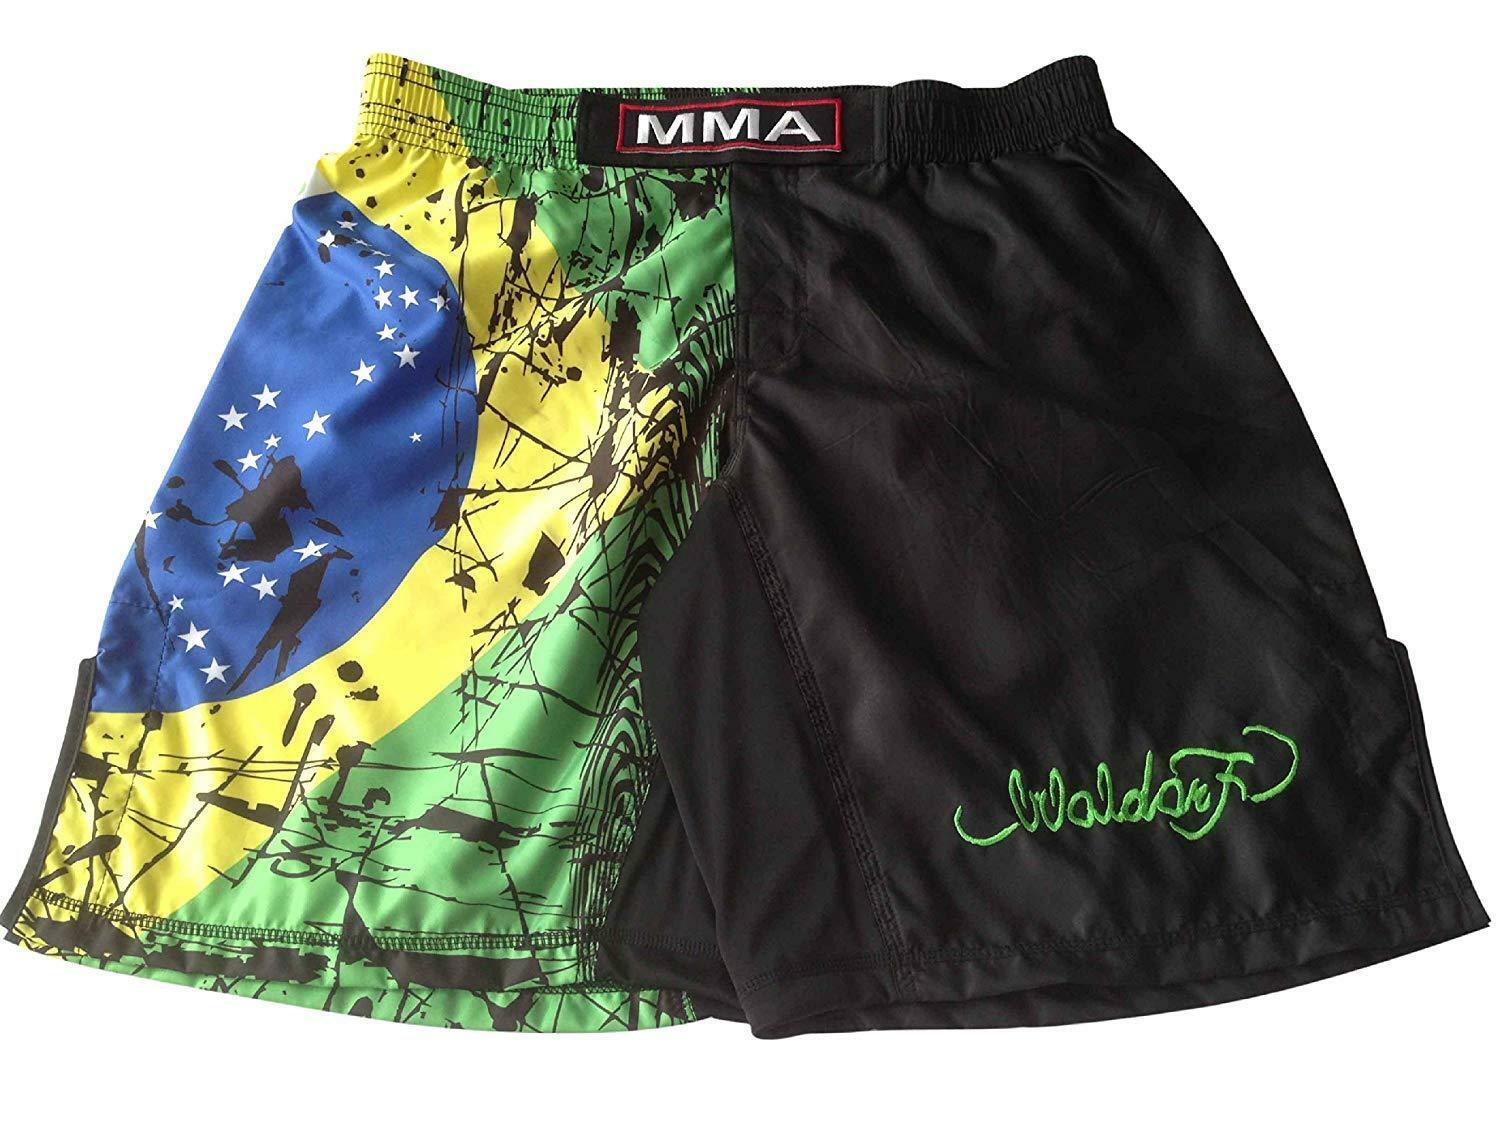 Woldorf USA MMA Shorts Polyester Brazilian  Flag design print style  exciting promotions